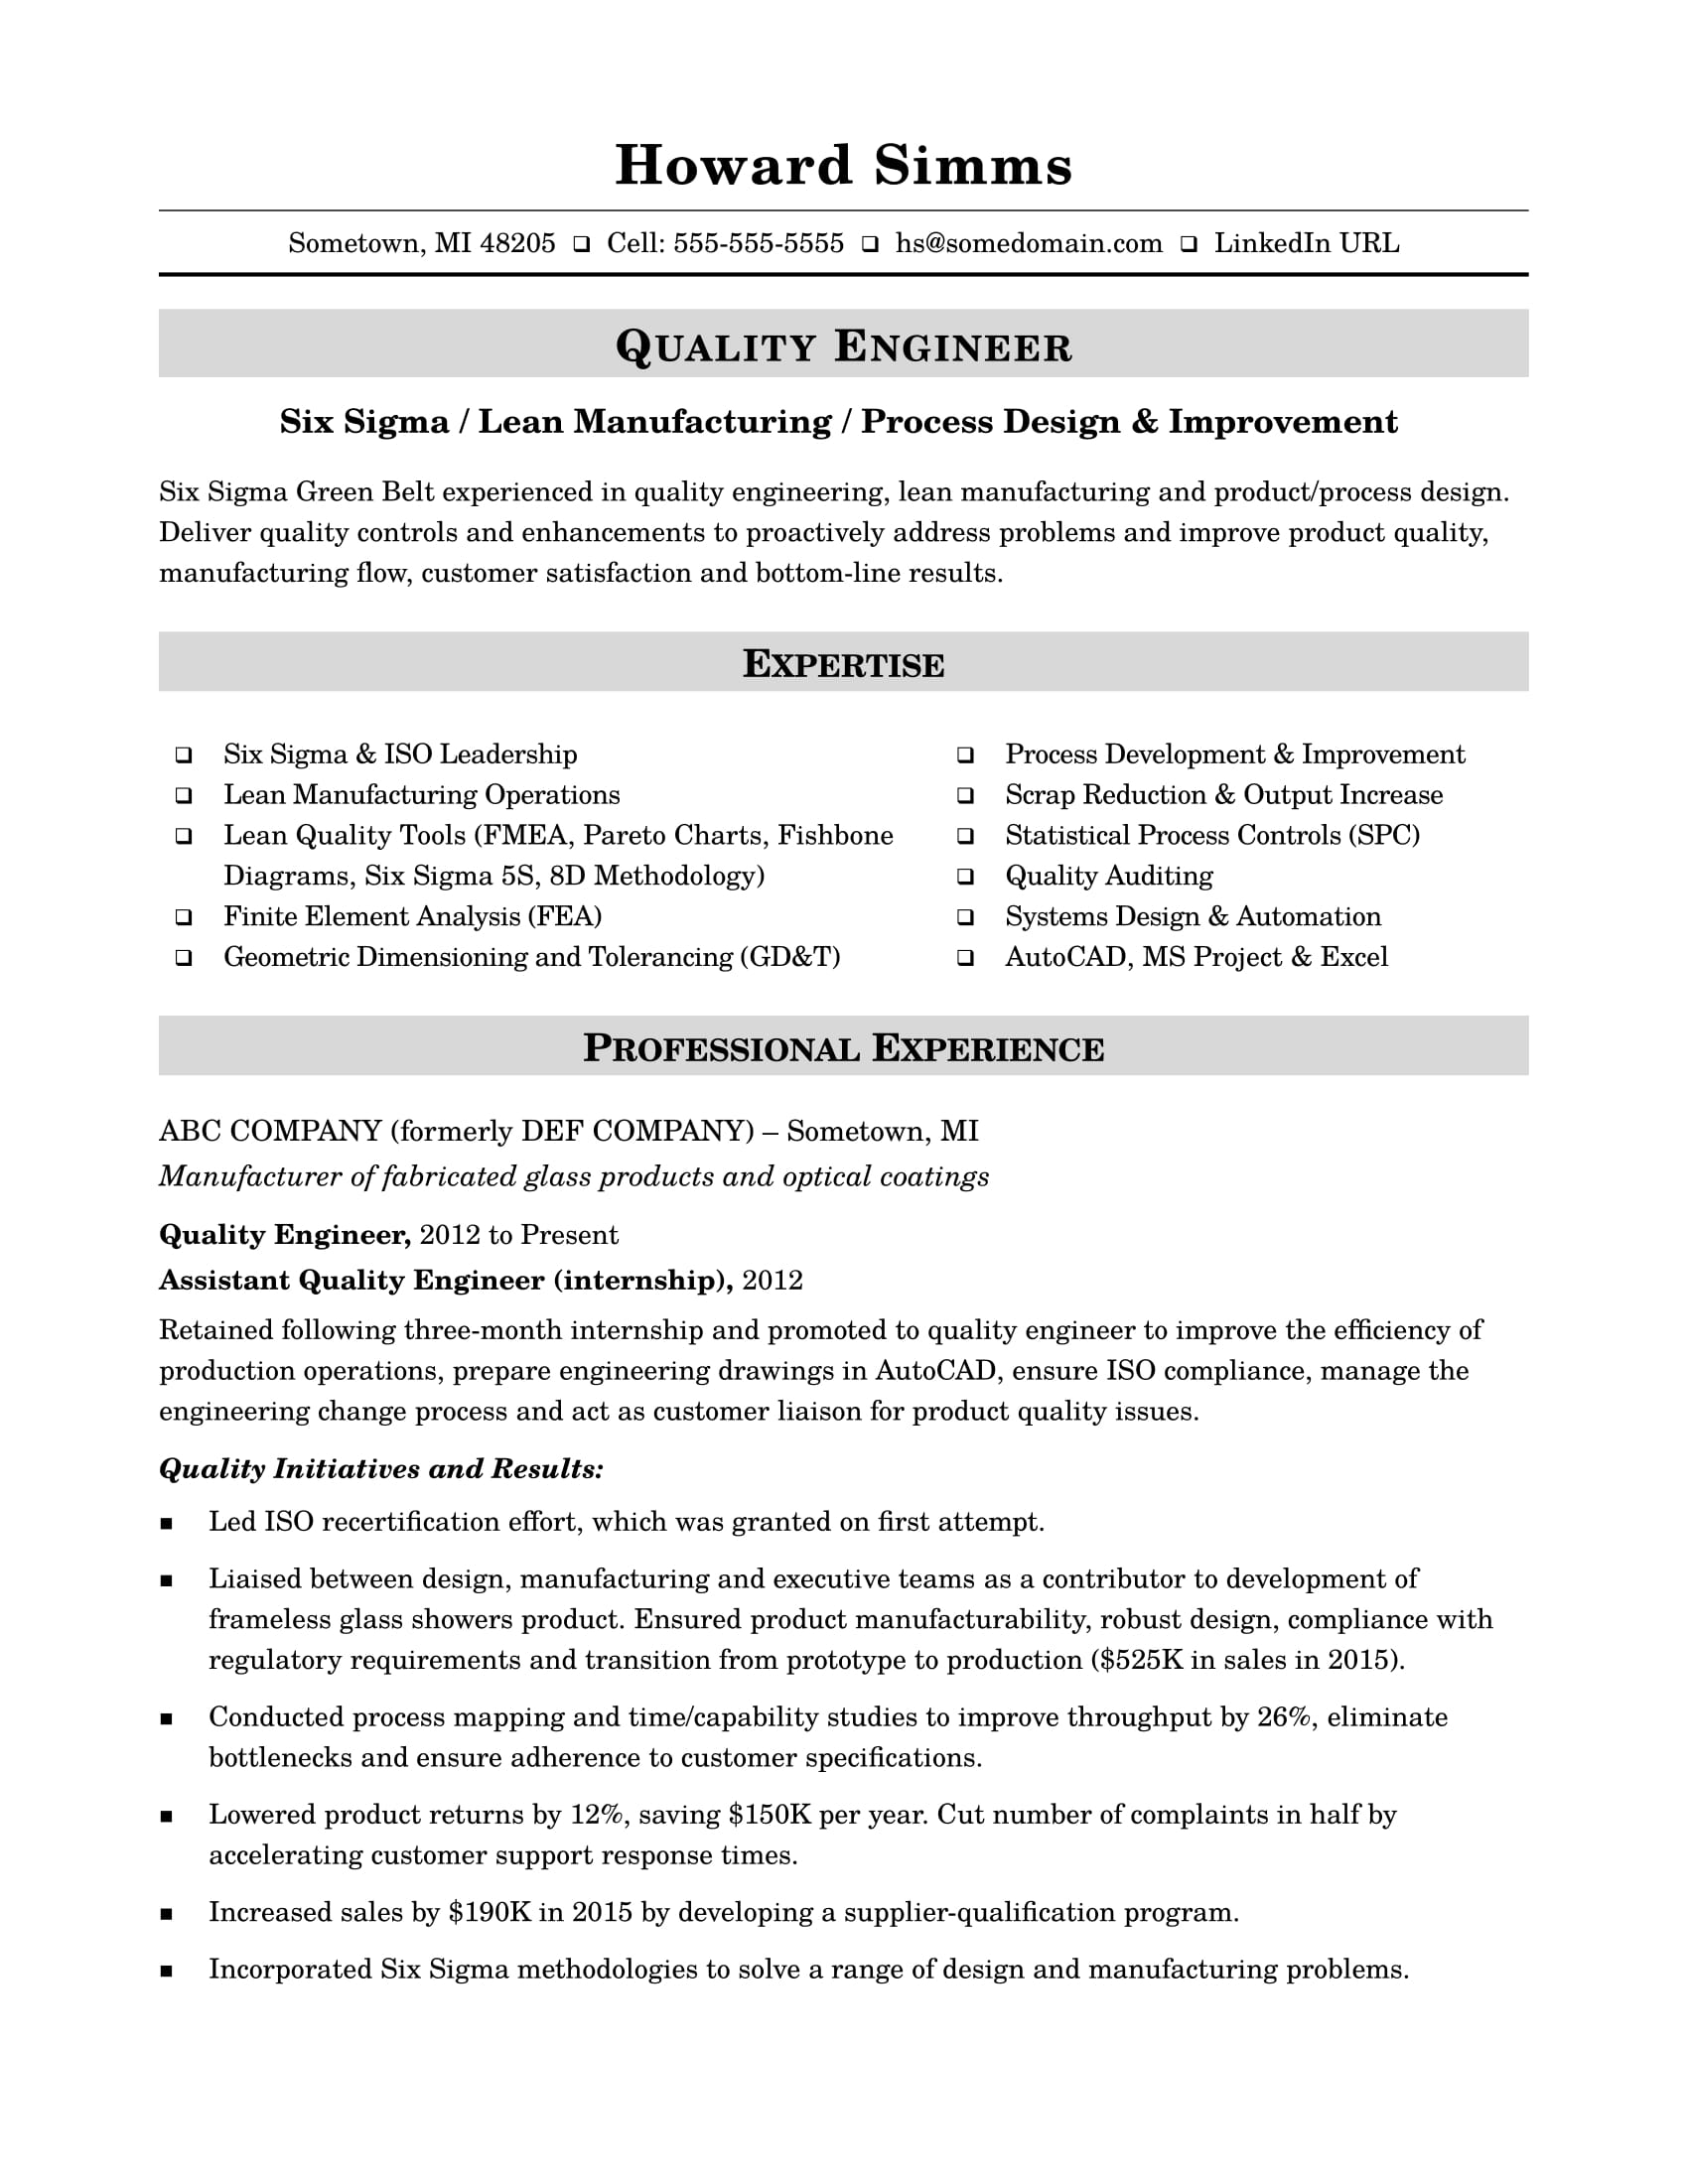 Sample Resume for a Midlevel Quality Engineer | Monster com